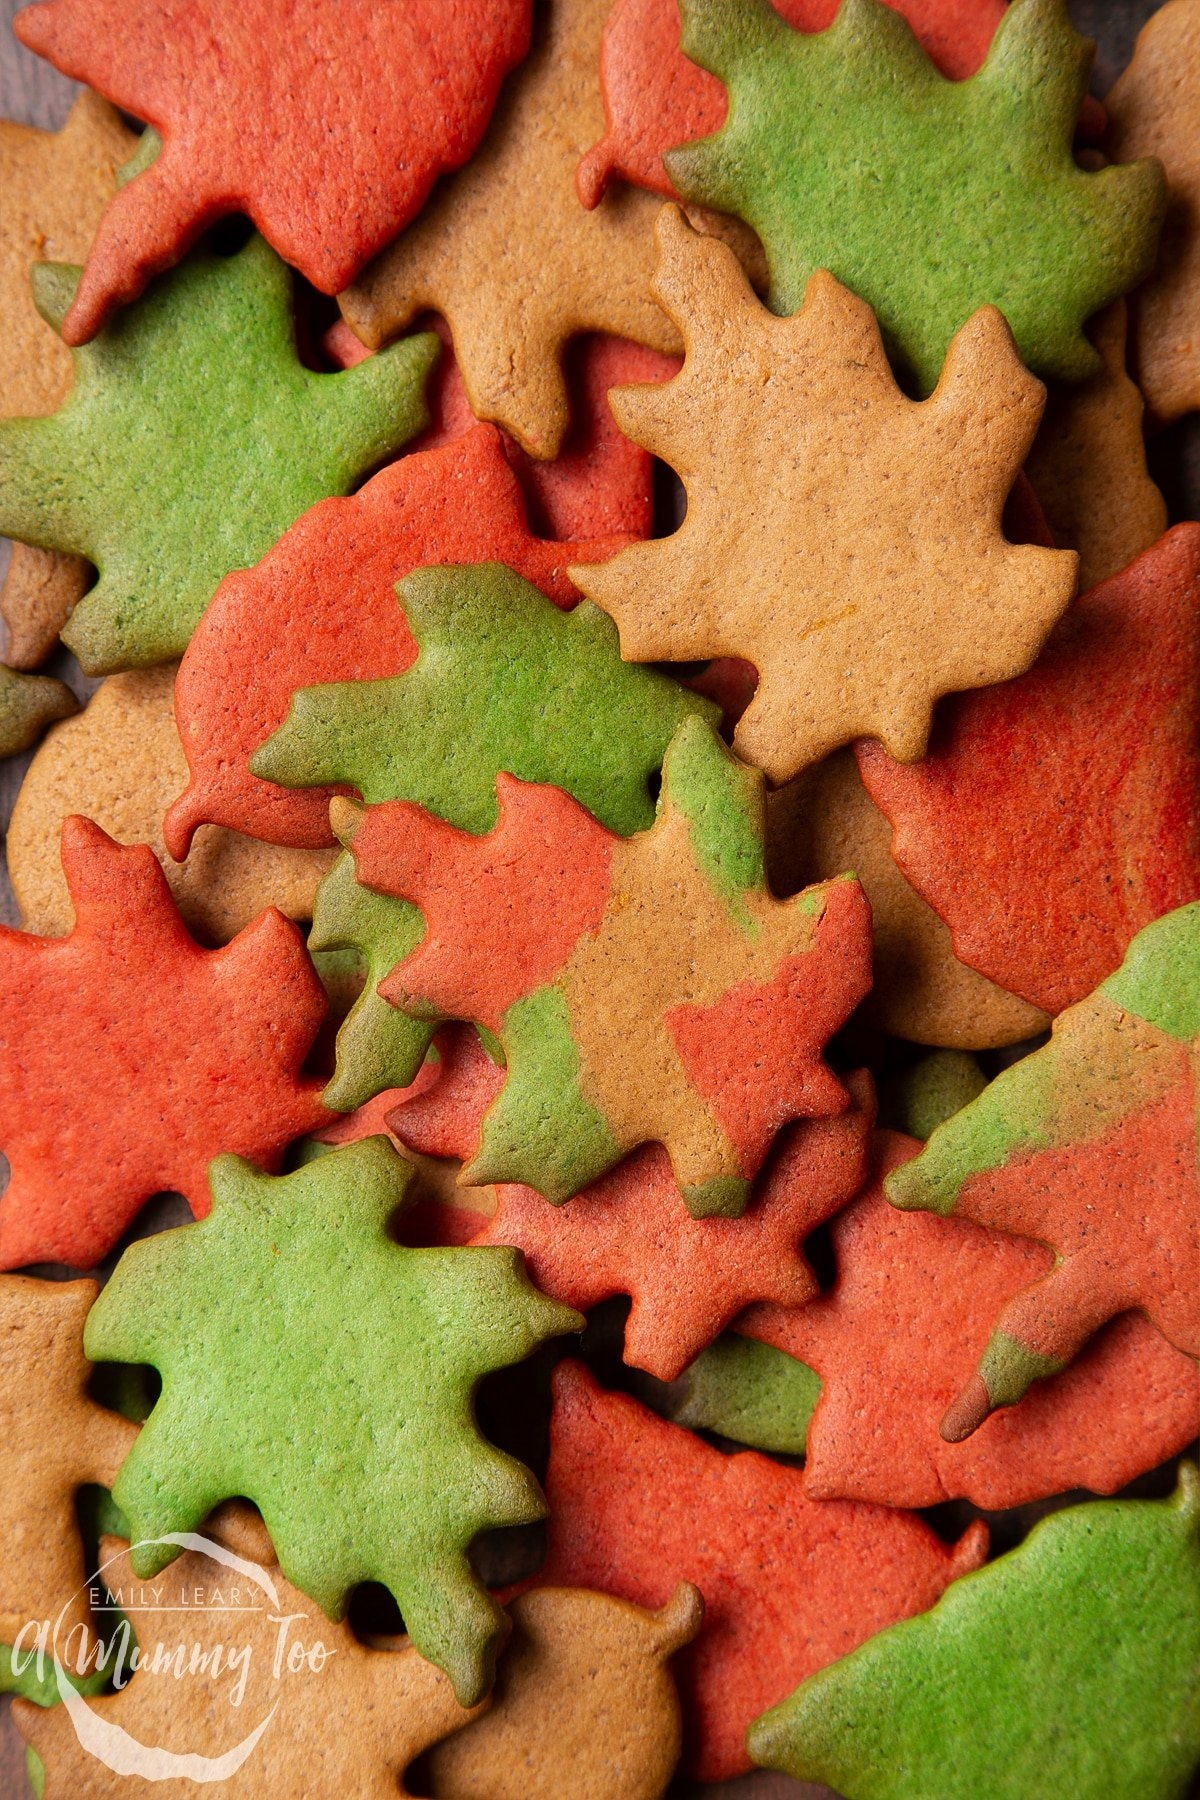 A pile of colourful red, green and brown autumn cookies cut into the shapes of autumn leaves. In the centre is a multicoloured leaf.